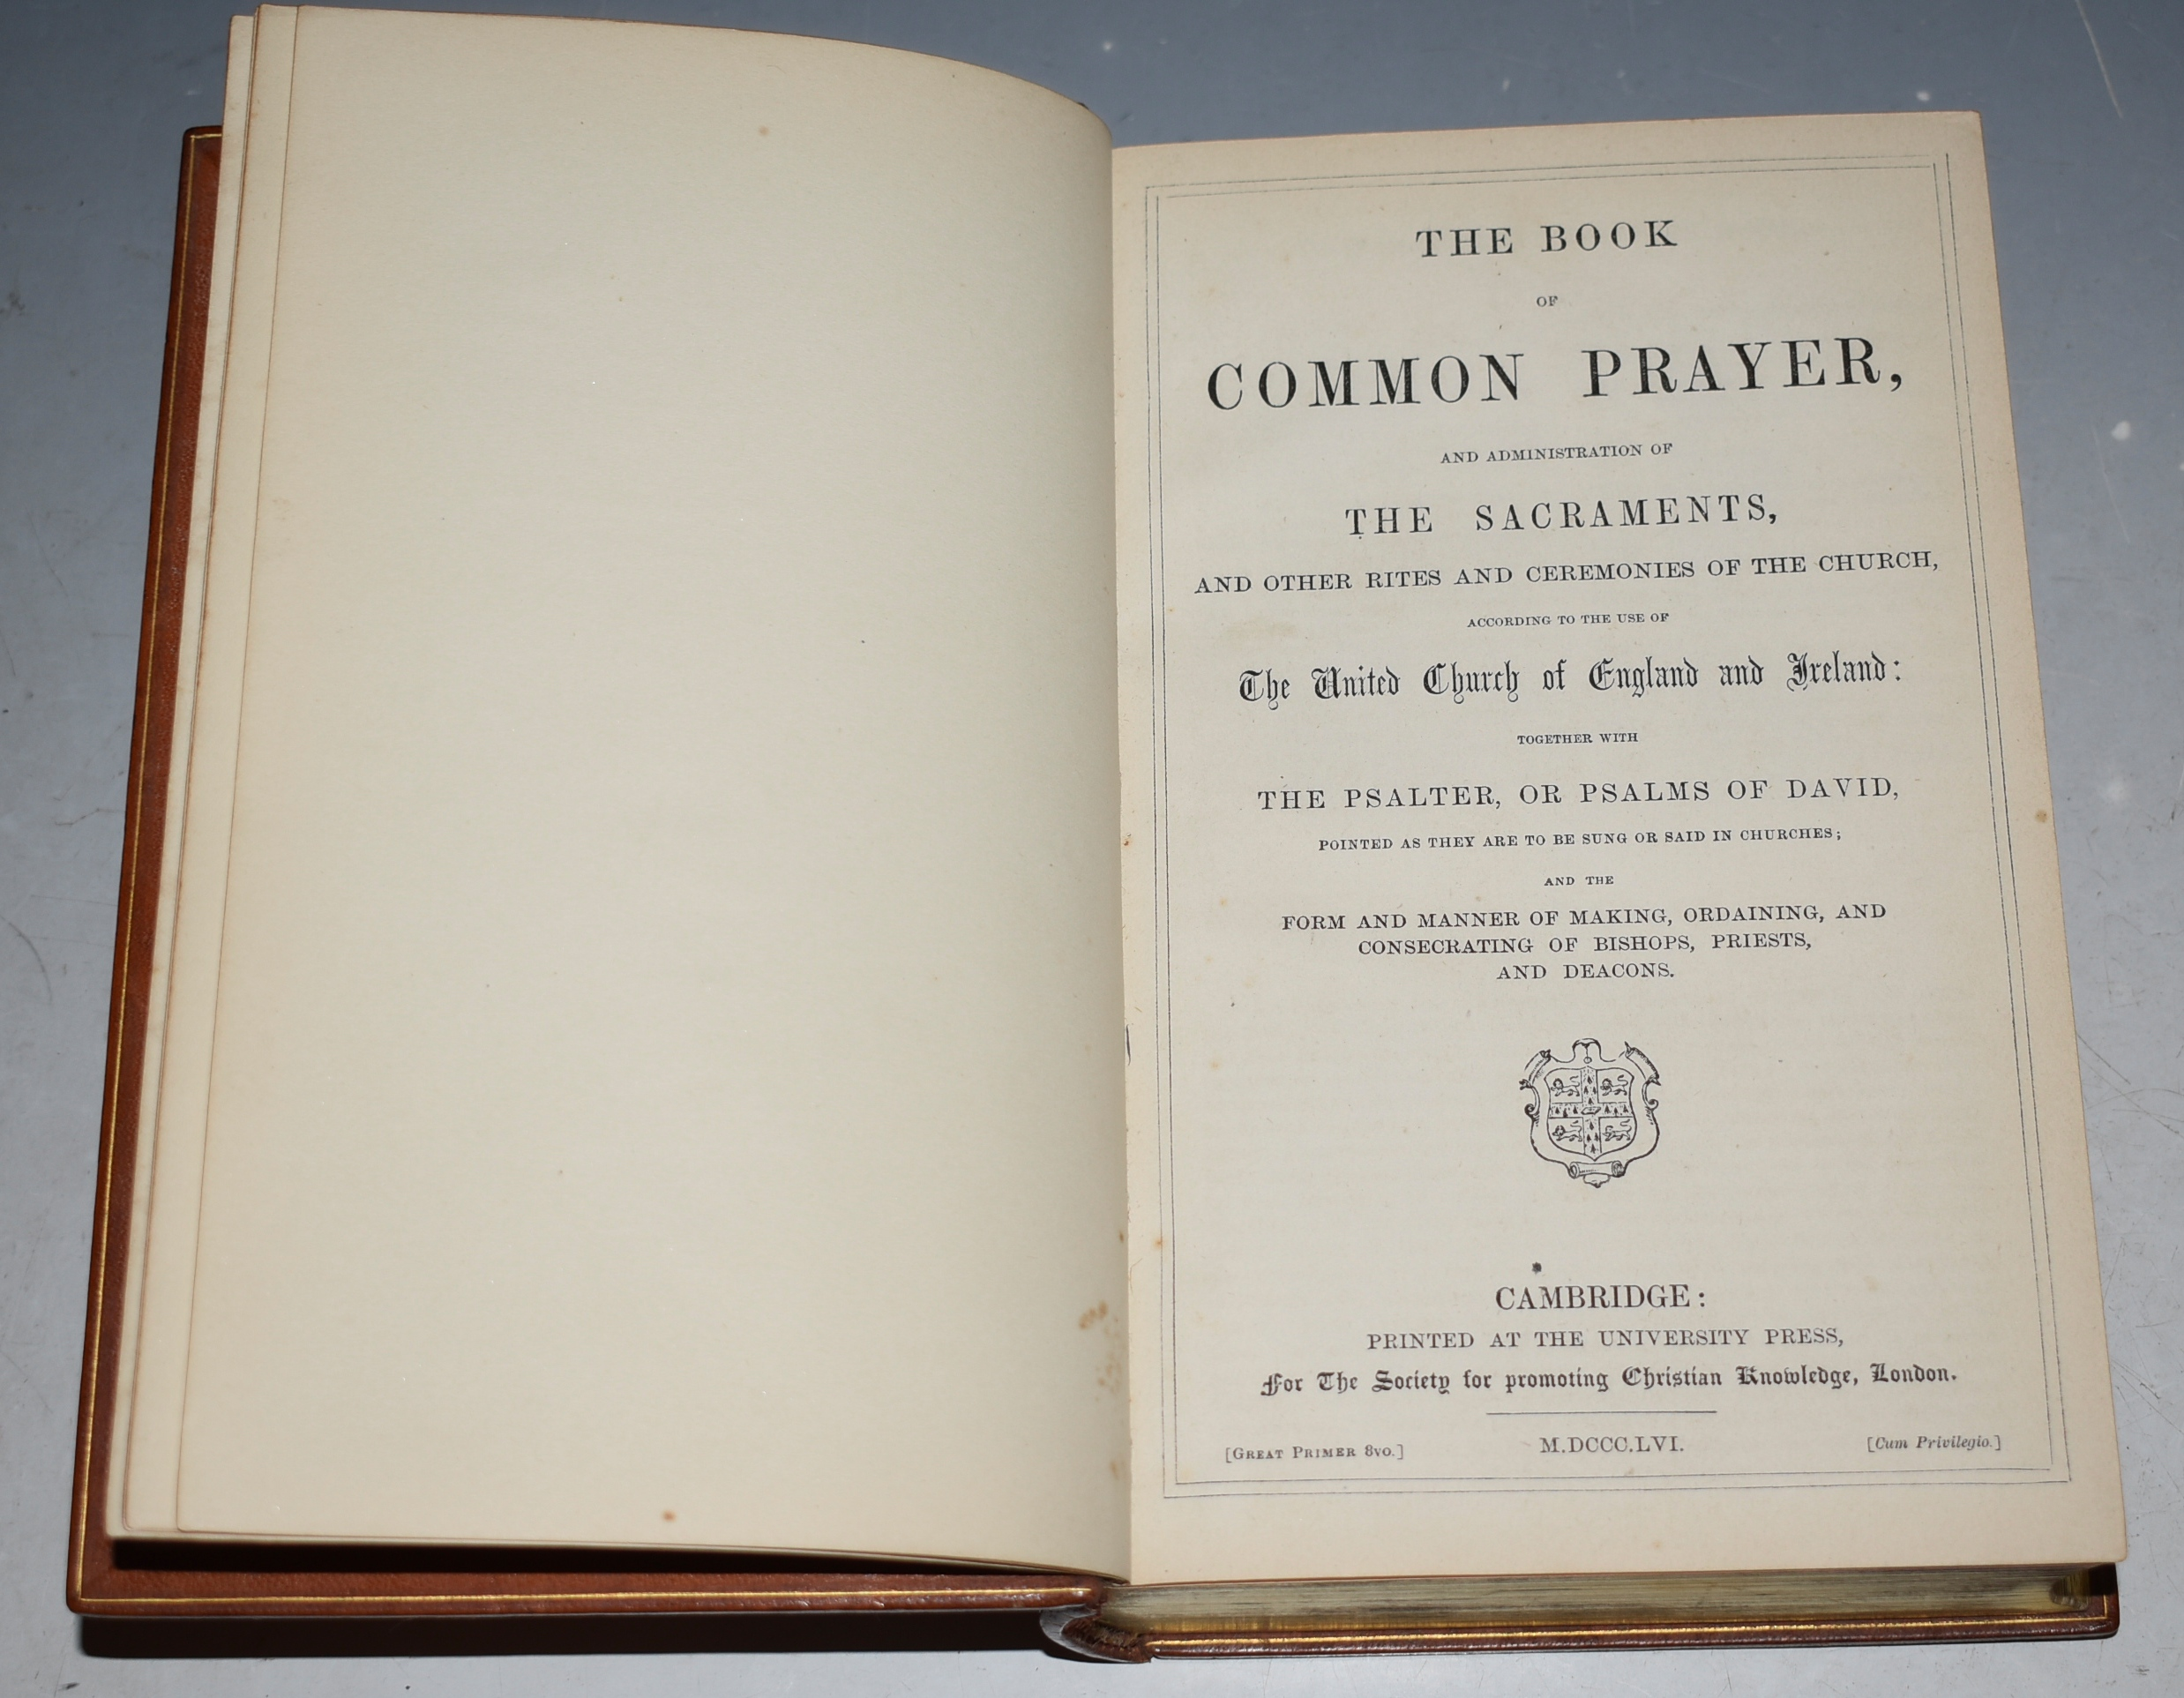 Image for The Book of Common Prayer & Hymns Ancient & Modern. In Two Volumes. And Administration of the Sacraments and other Rites and Ceremonies of the Church, according to the use of The United Church of England and Ireland, together with The Psalter or Psalms of David... and the Consecrating of Bishops, Priests and Deacons. PLUS Hymns, Ancient and Modern, For The Use in The Services of the Church, with Accompanying Tunes. Old Edition, 1889, As Edited by W.H. Monk and C. Steggall. With Second Supplement. Complete Edition. In Two Volumes.